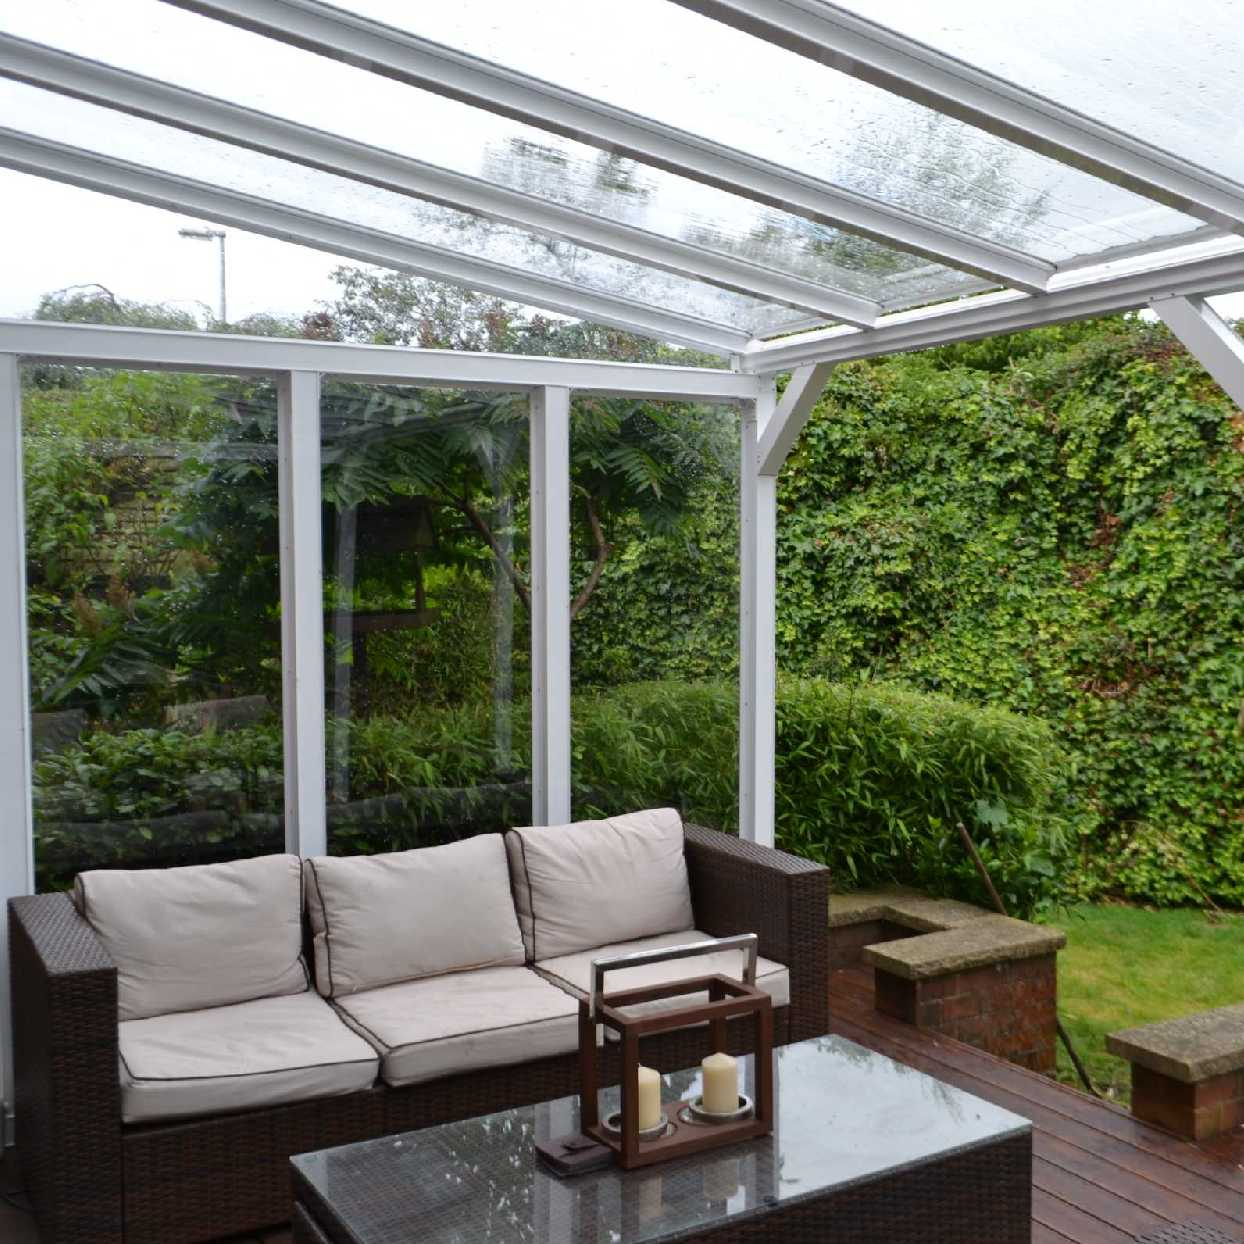 Great selection of Omega Smart White Lean-To Canopy with 16mm Polycarbonate Glazing - 12.0m (W) x 3.5m (P), (5) Supporting Posts